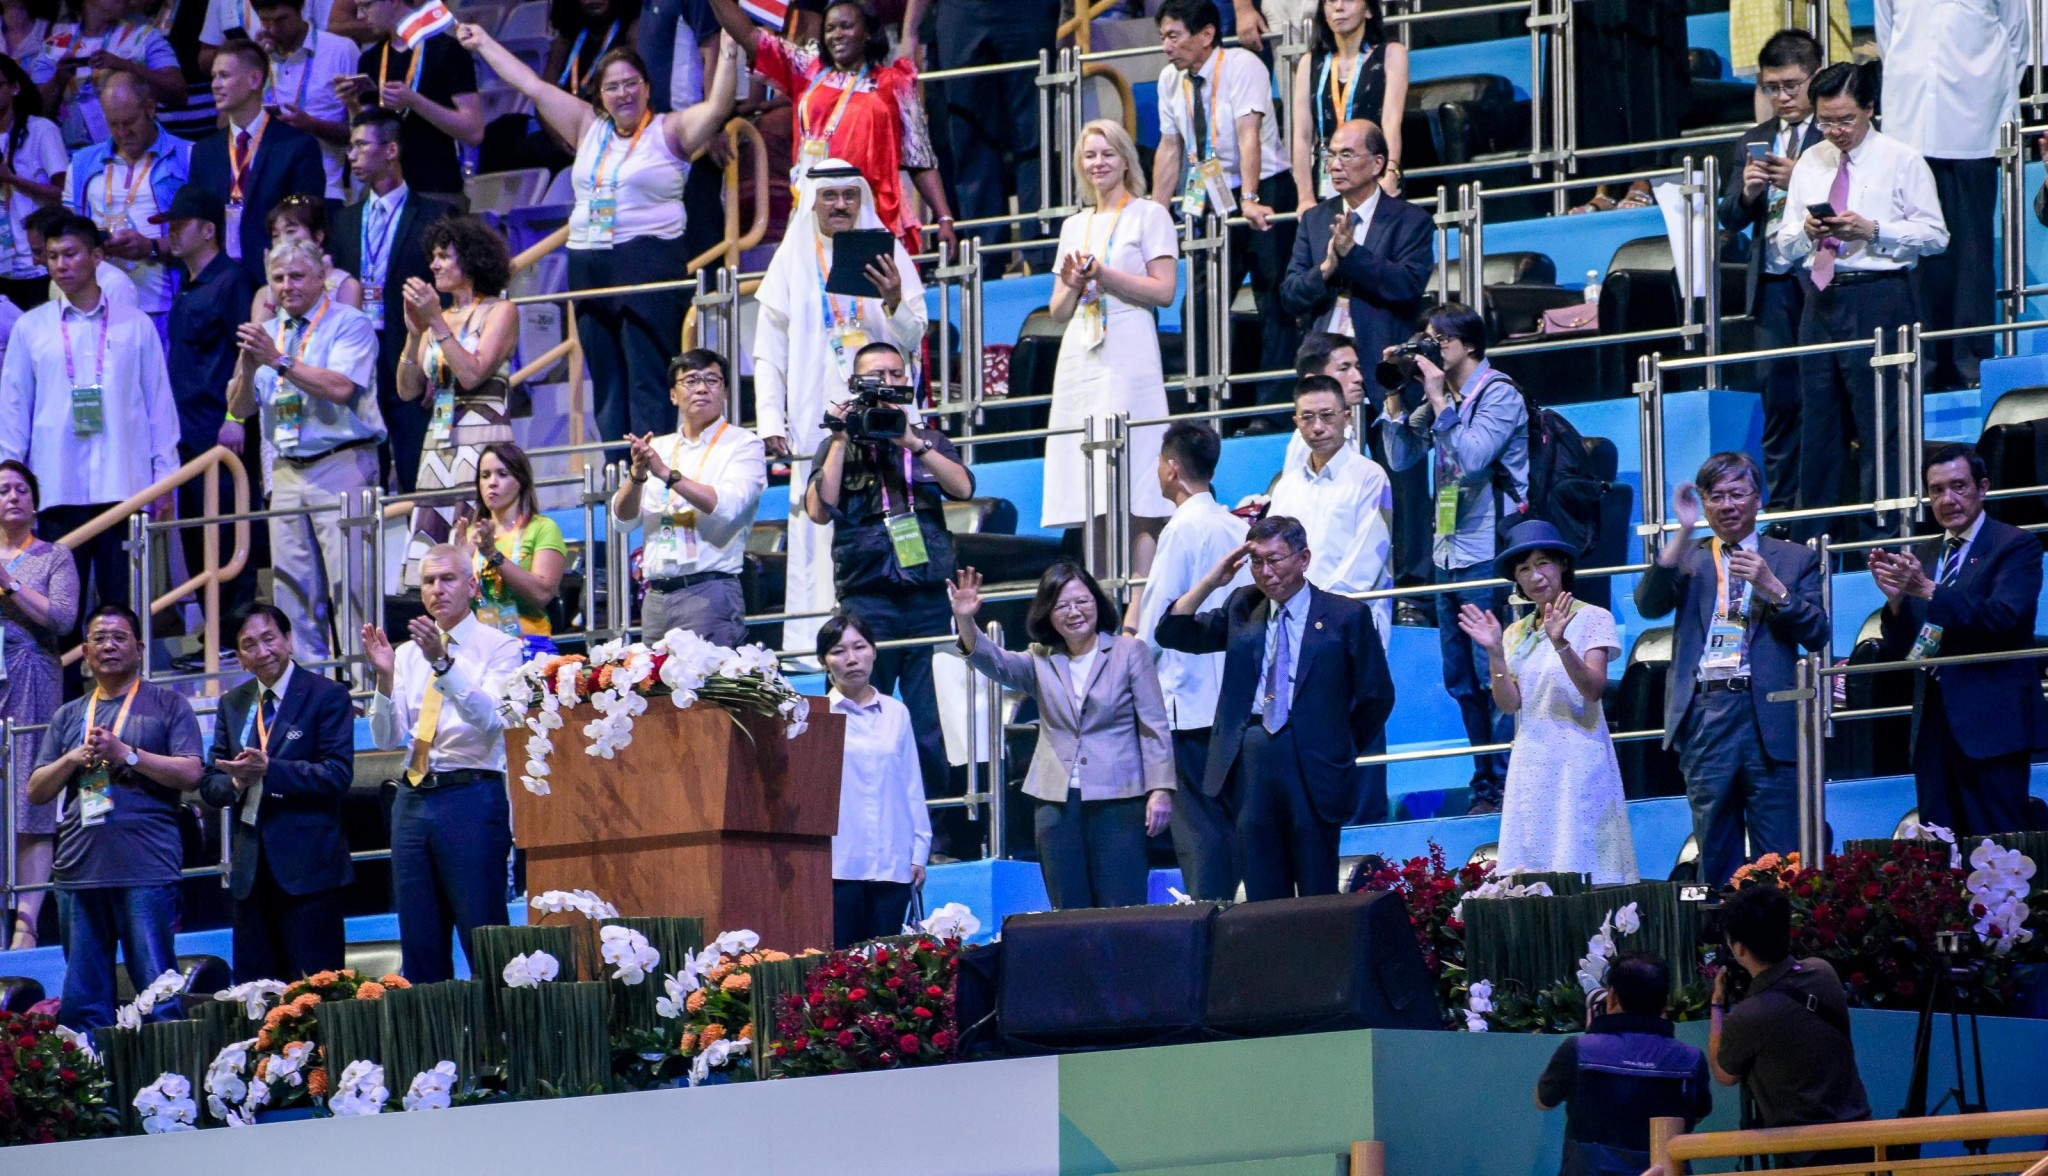 Taipei 2017: Opening Ceremony of the 29th Summer Universiade